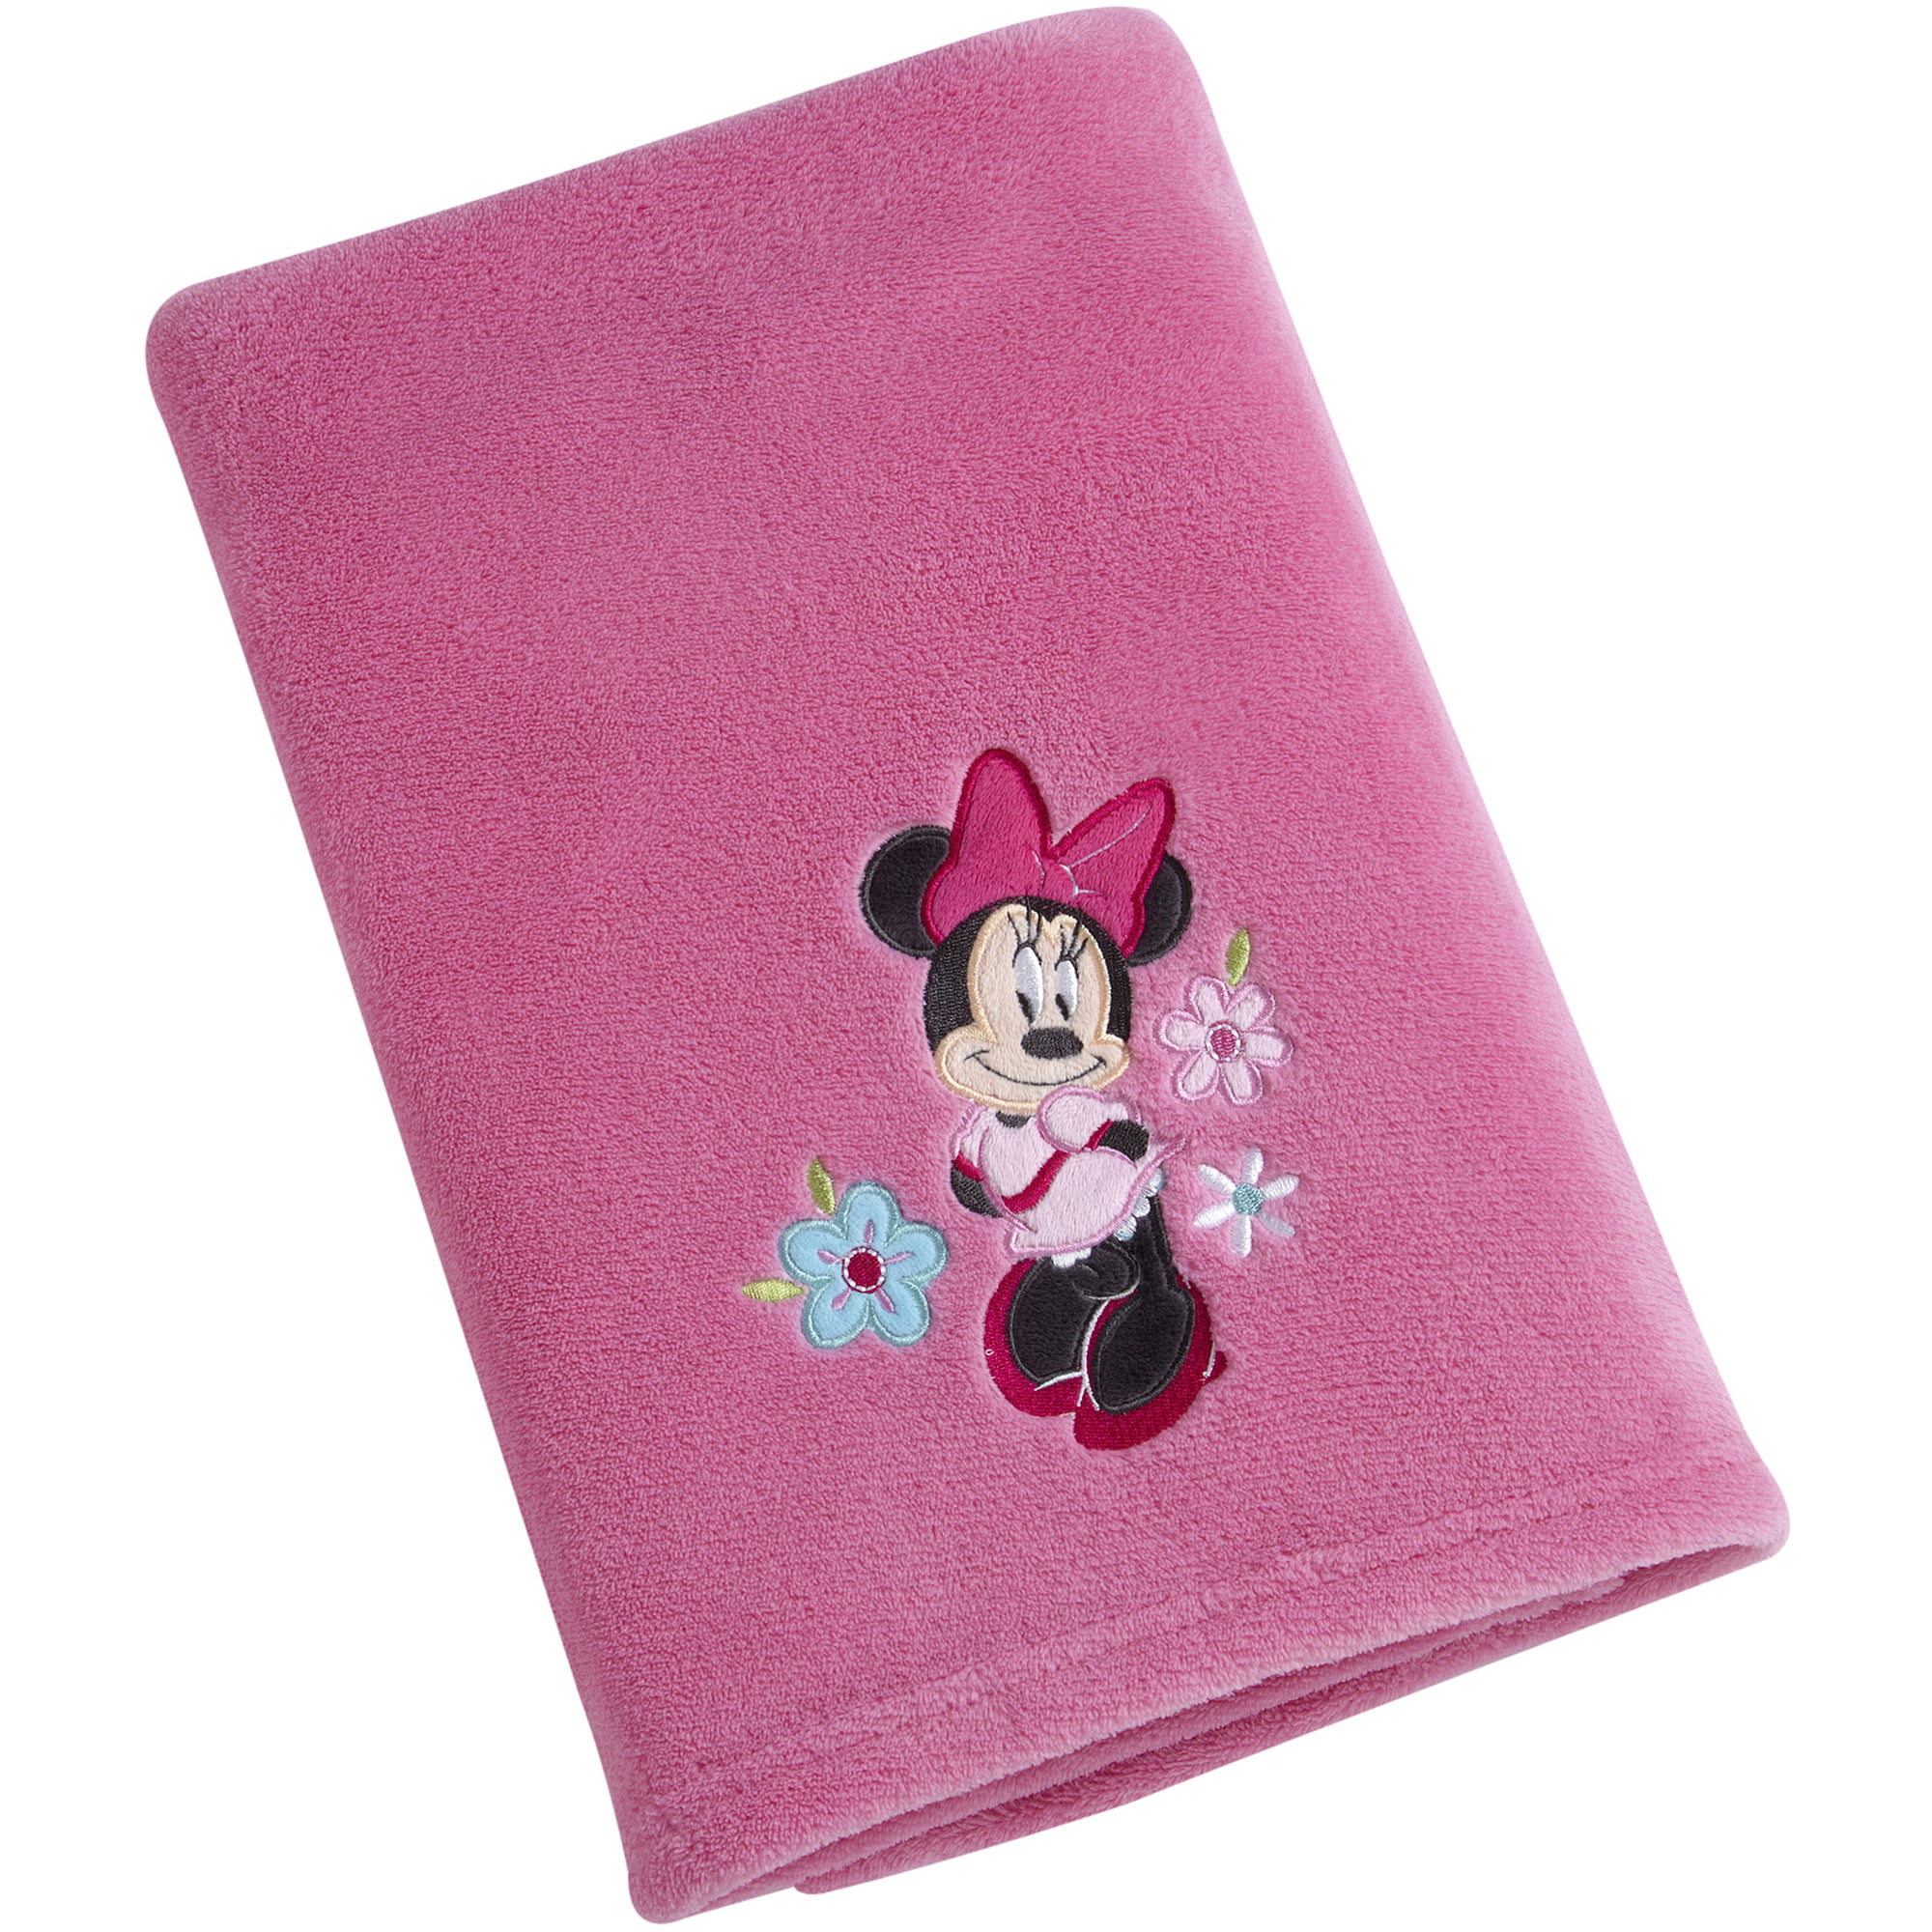 Disney Character Baby Blanket Minnie Mouse Walmart